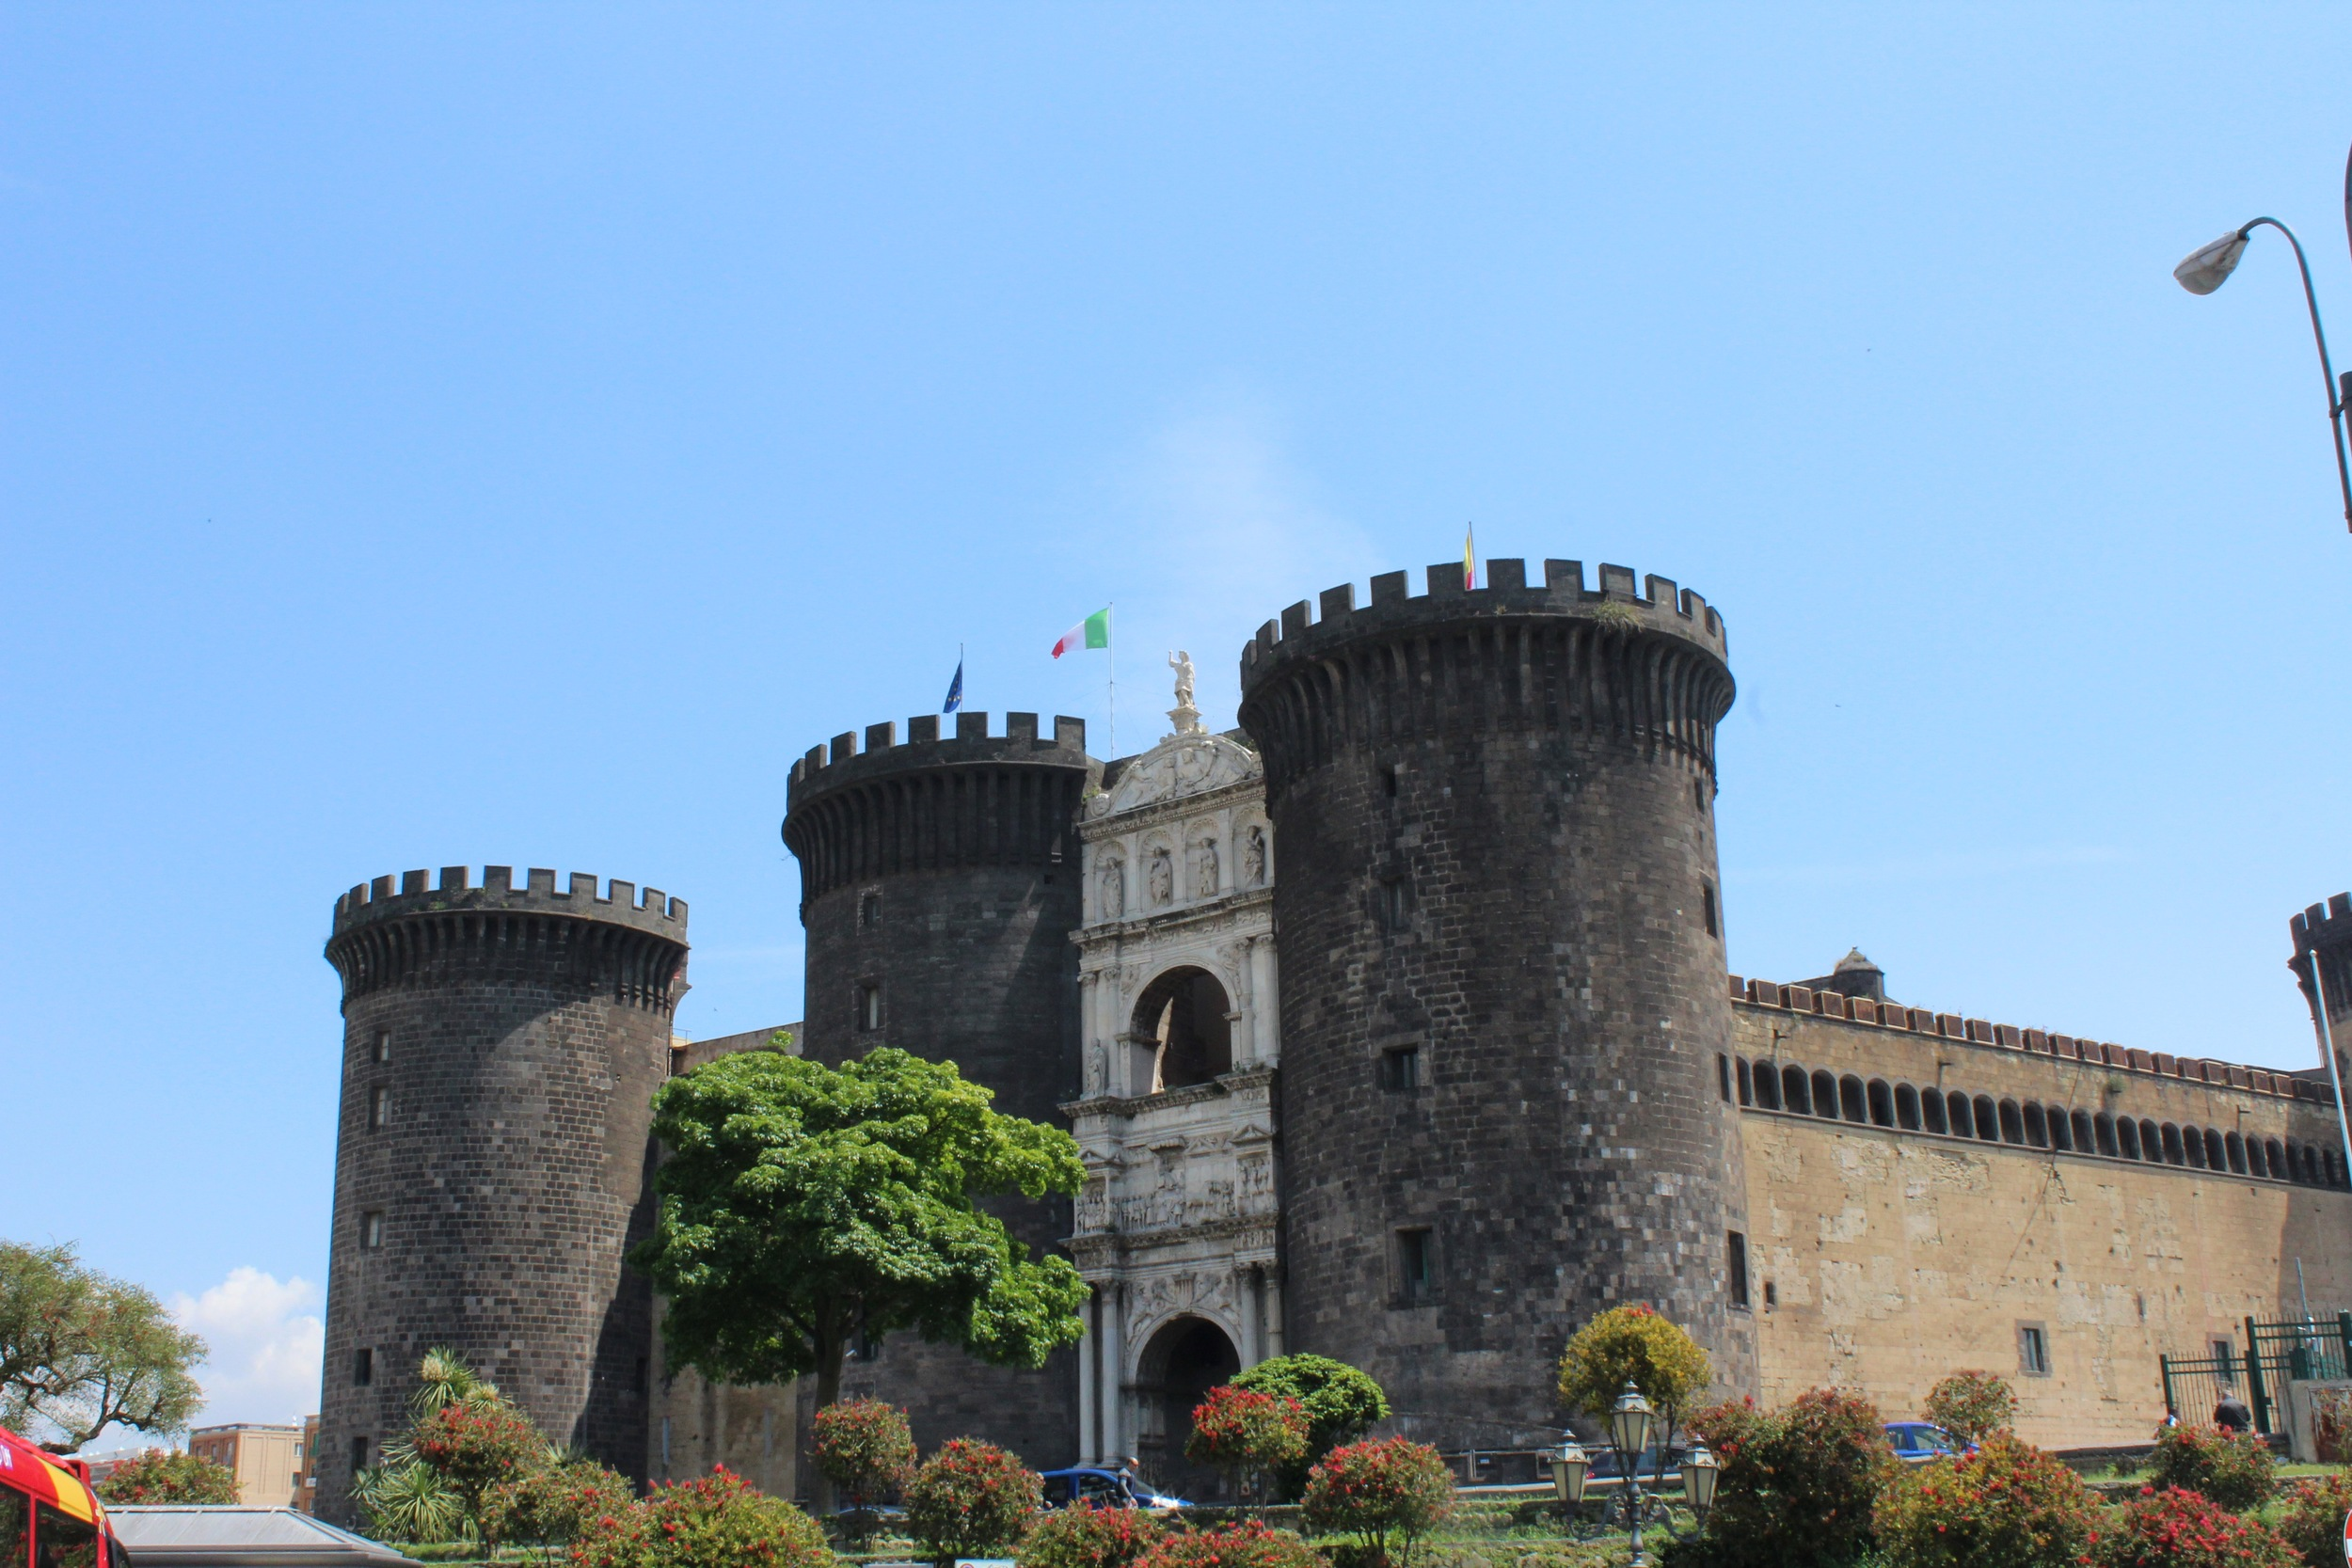 View of the Castel Nuovo or Maschio Angoino as the locals call it.